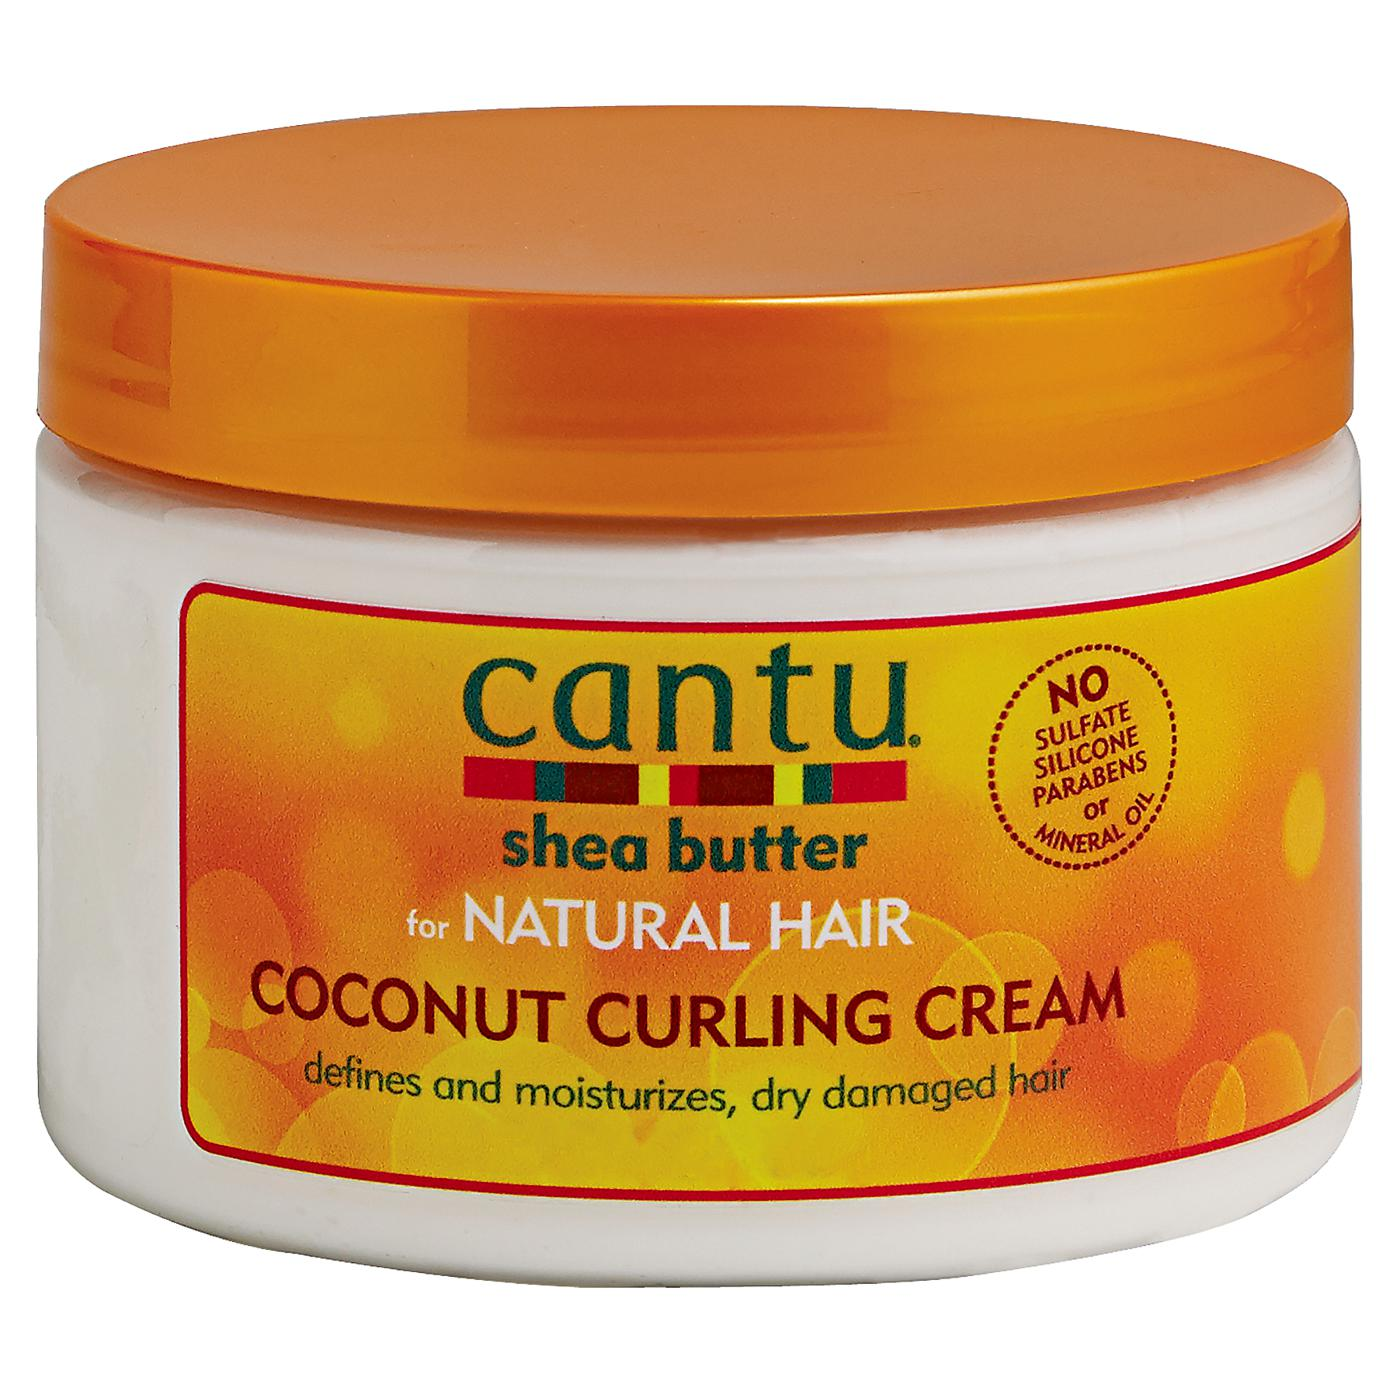 Cantu Shea Butter Coconut Curling Cream Locken Creme Online Günstig